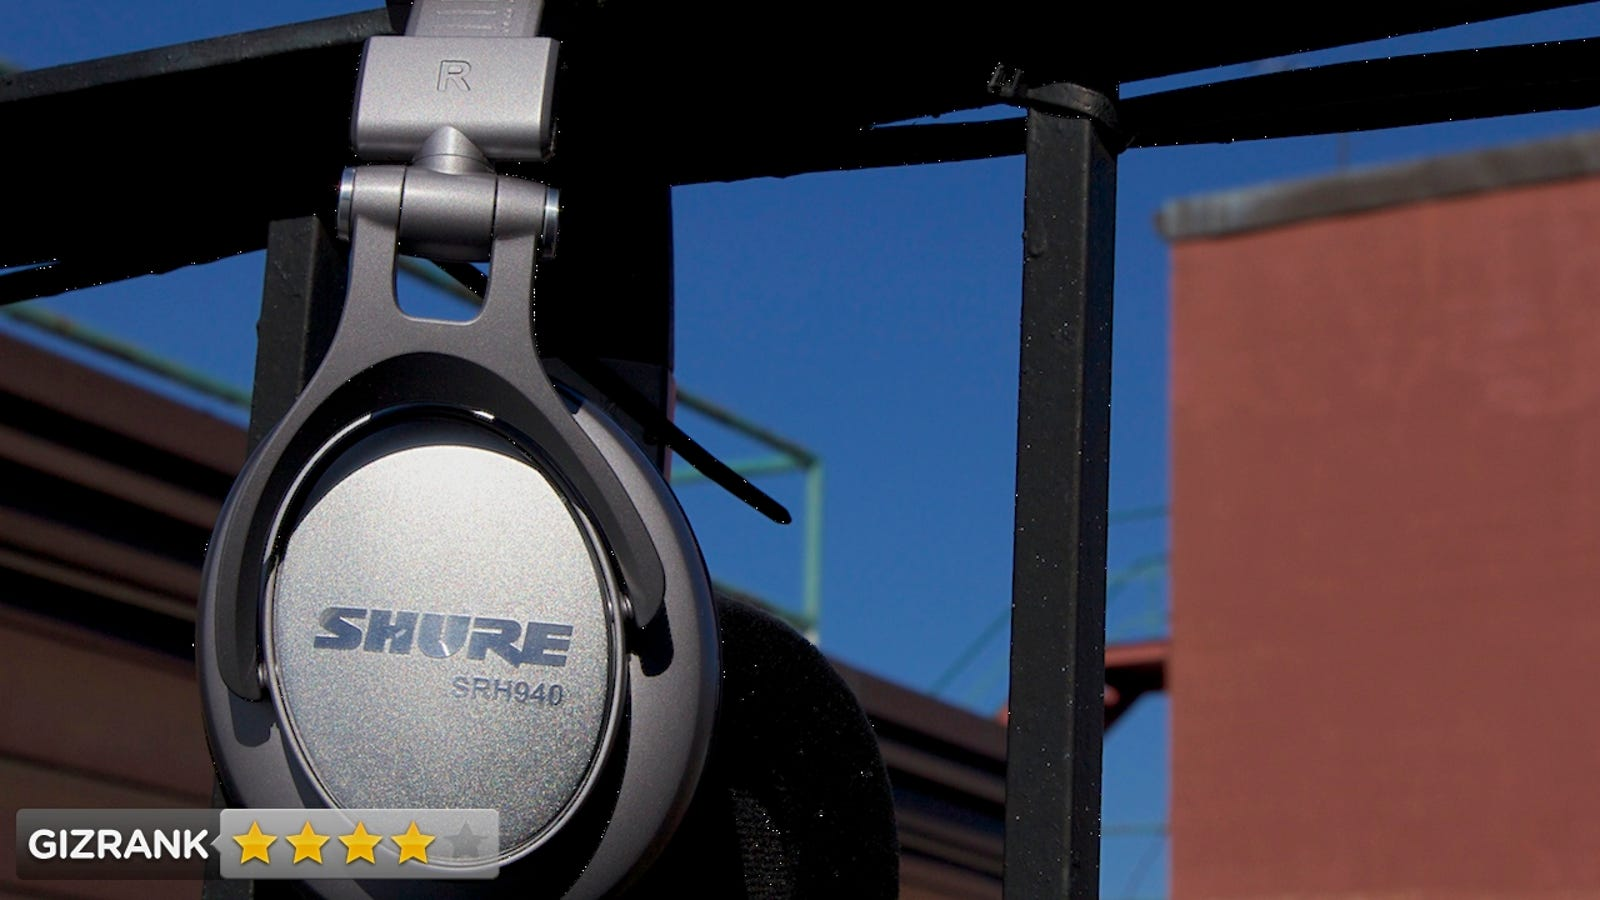 cheap earbuds with case - Shure SRH-940 Headphones Lightning Review: Serious Bang for the Buck